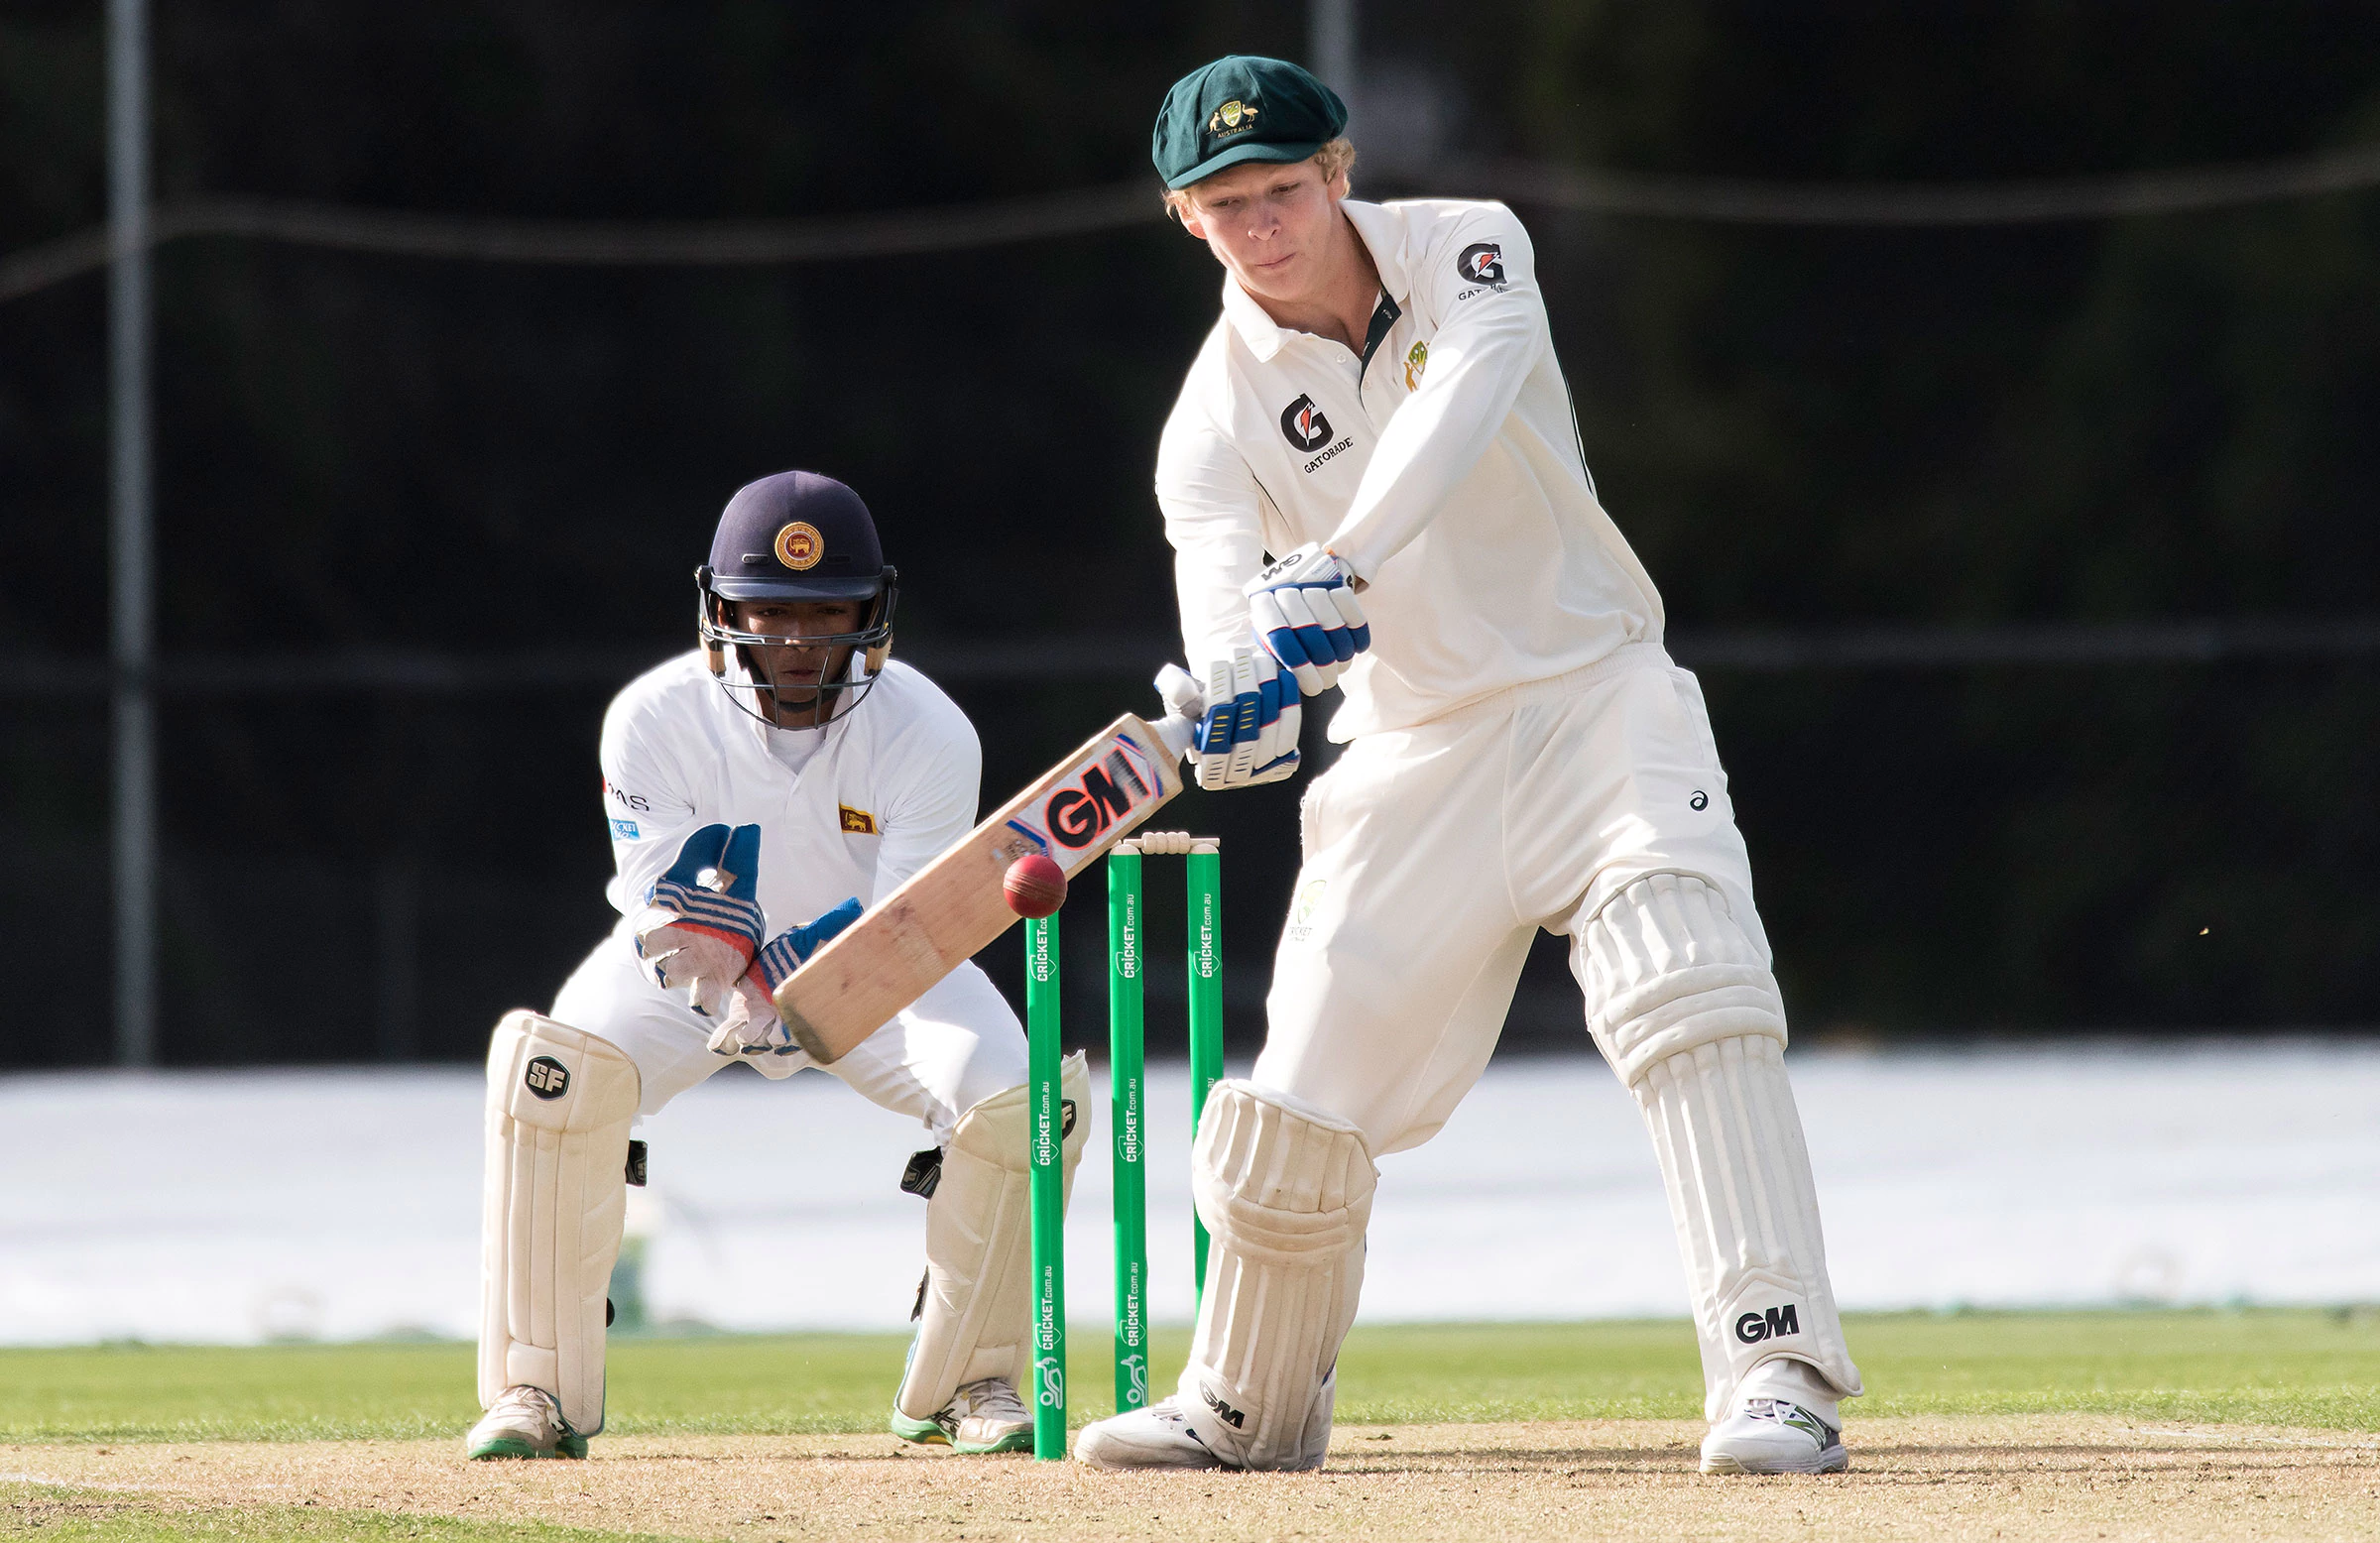 U19s prepare to face Afghanistan in the World Cup Semi Finals